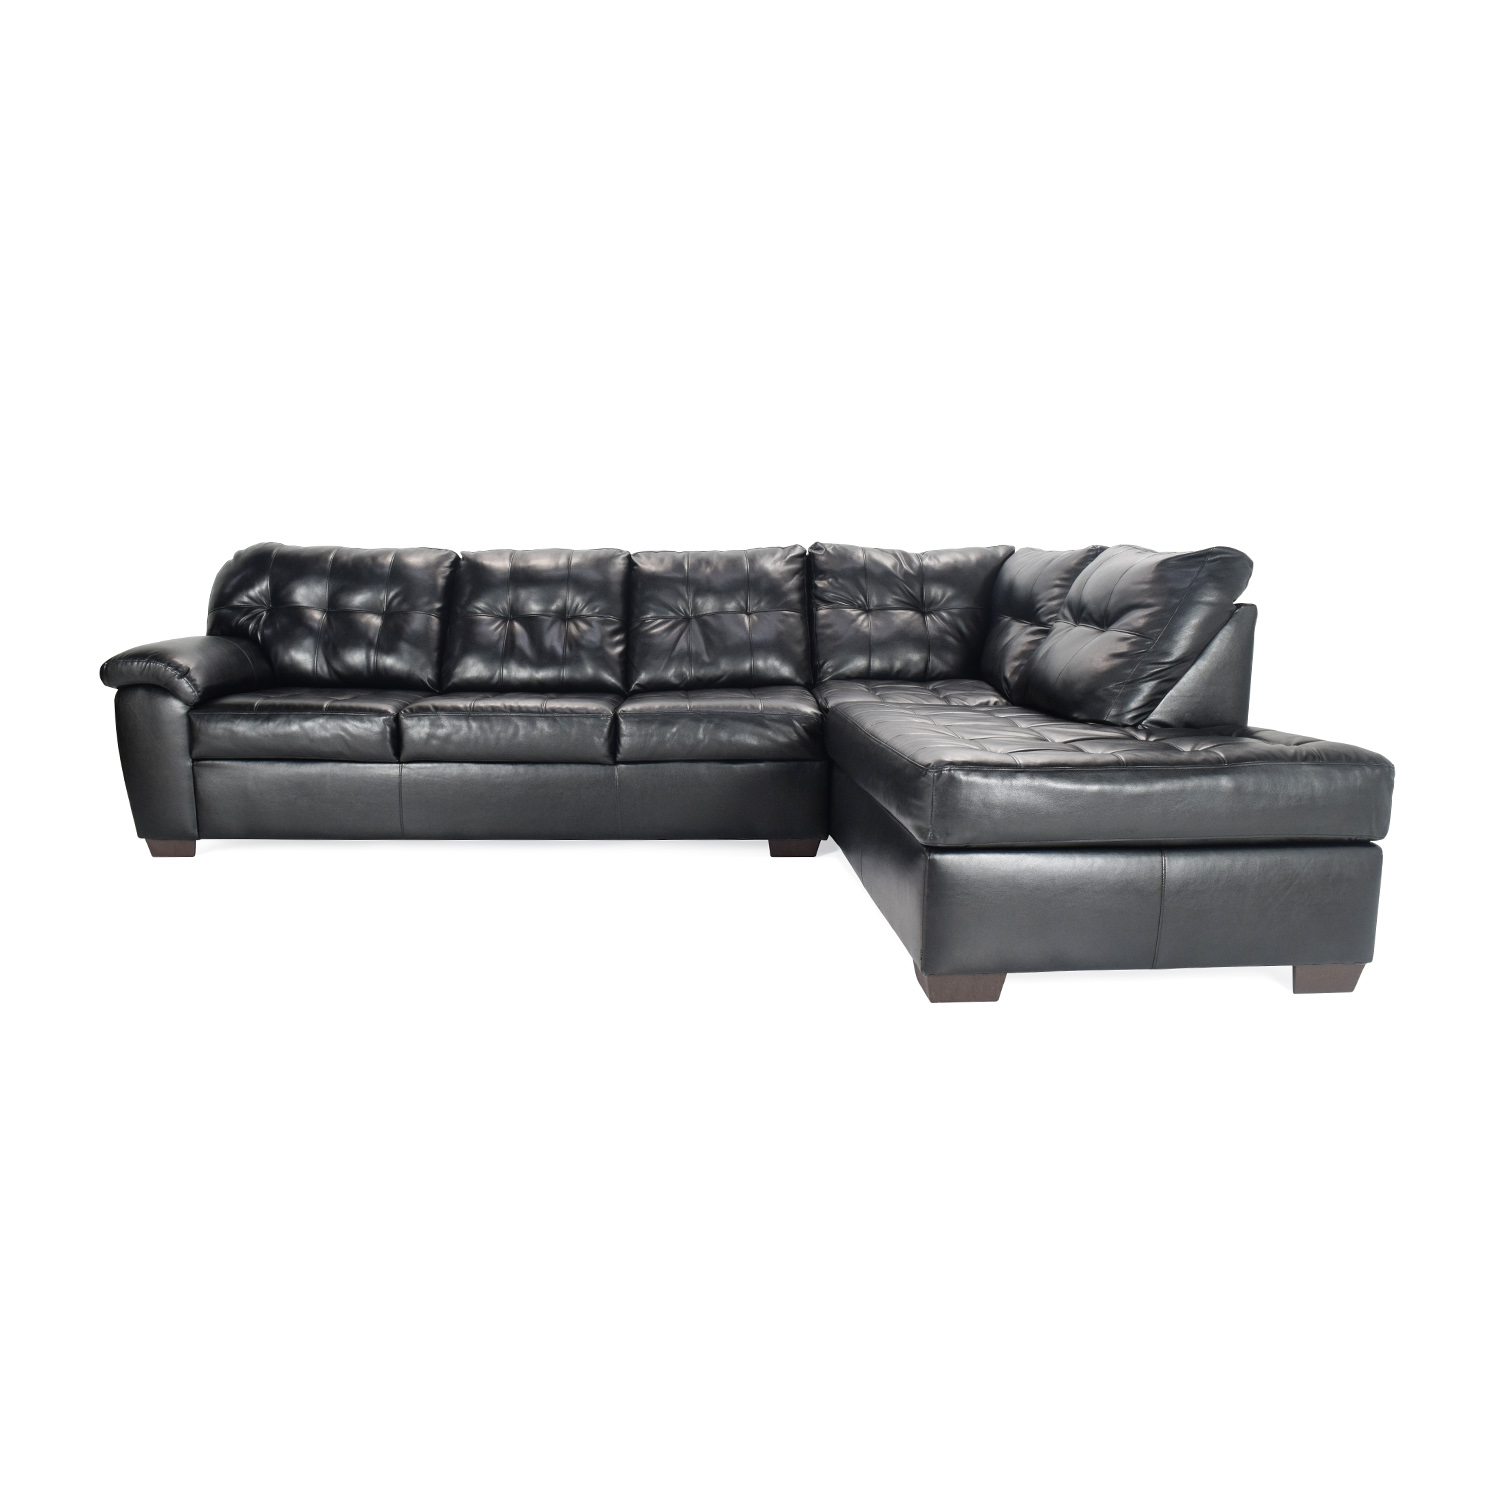 Shop Bobs Furniture Black Faux Leather Sectional Online ...